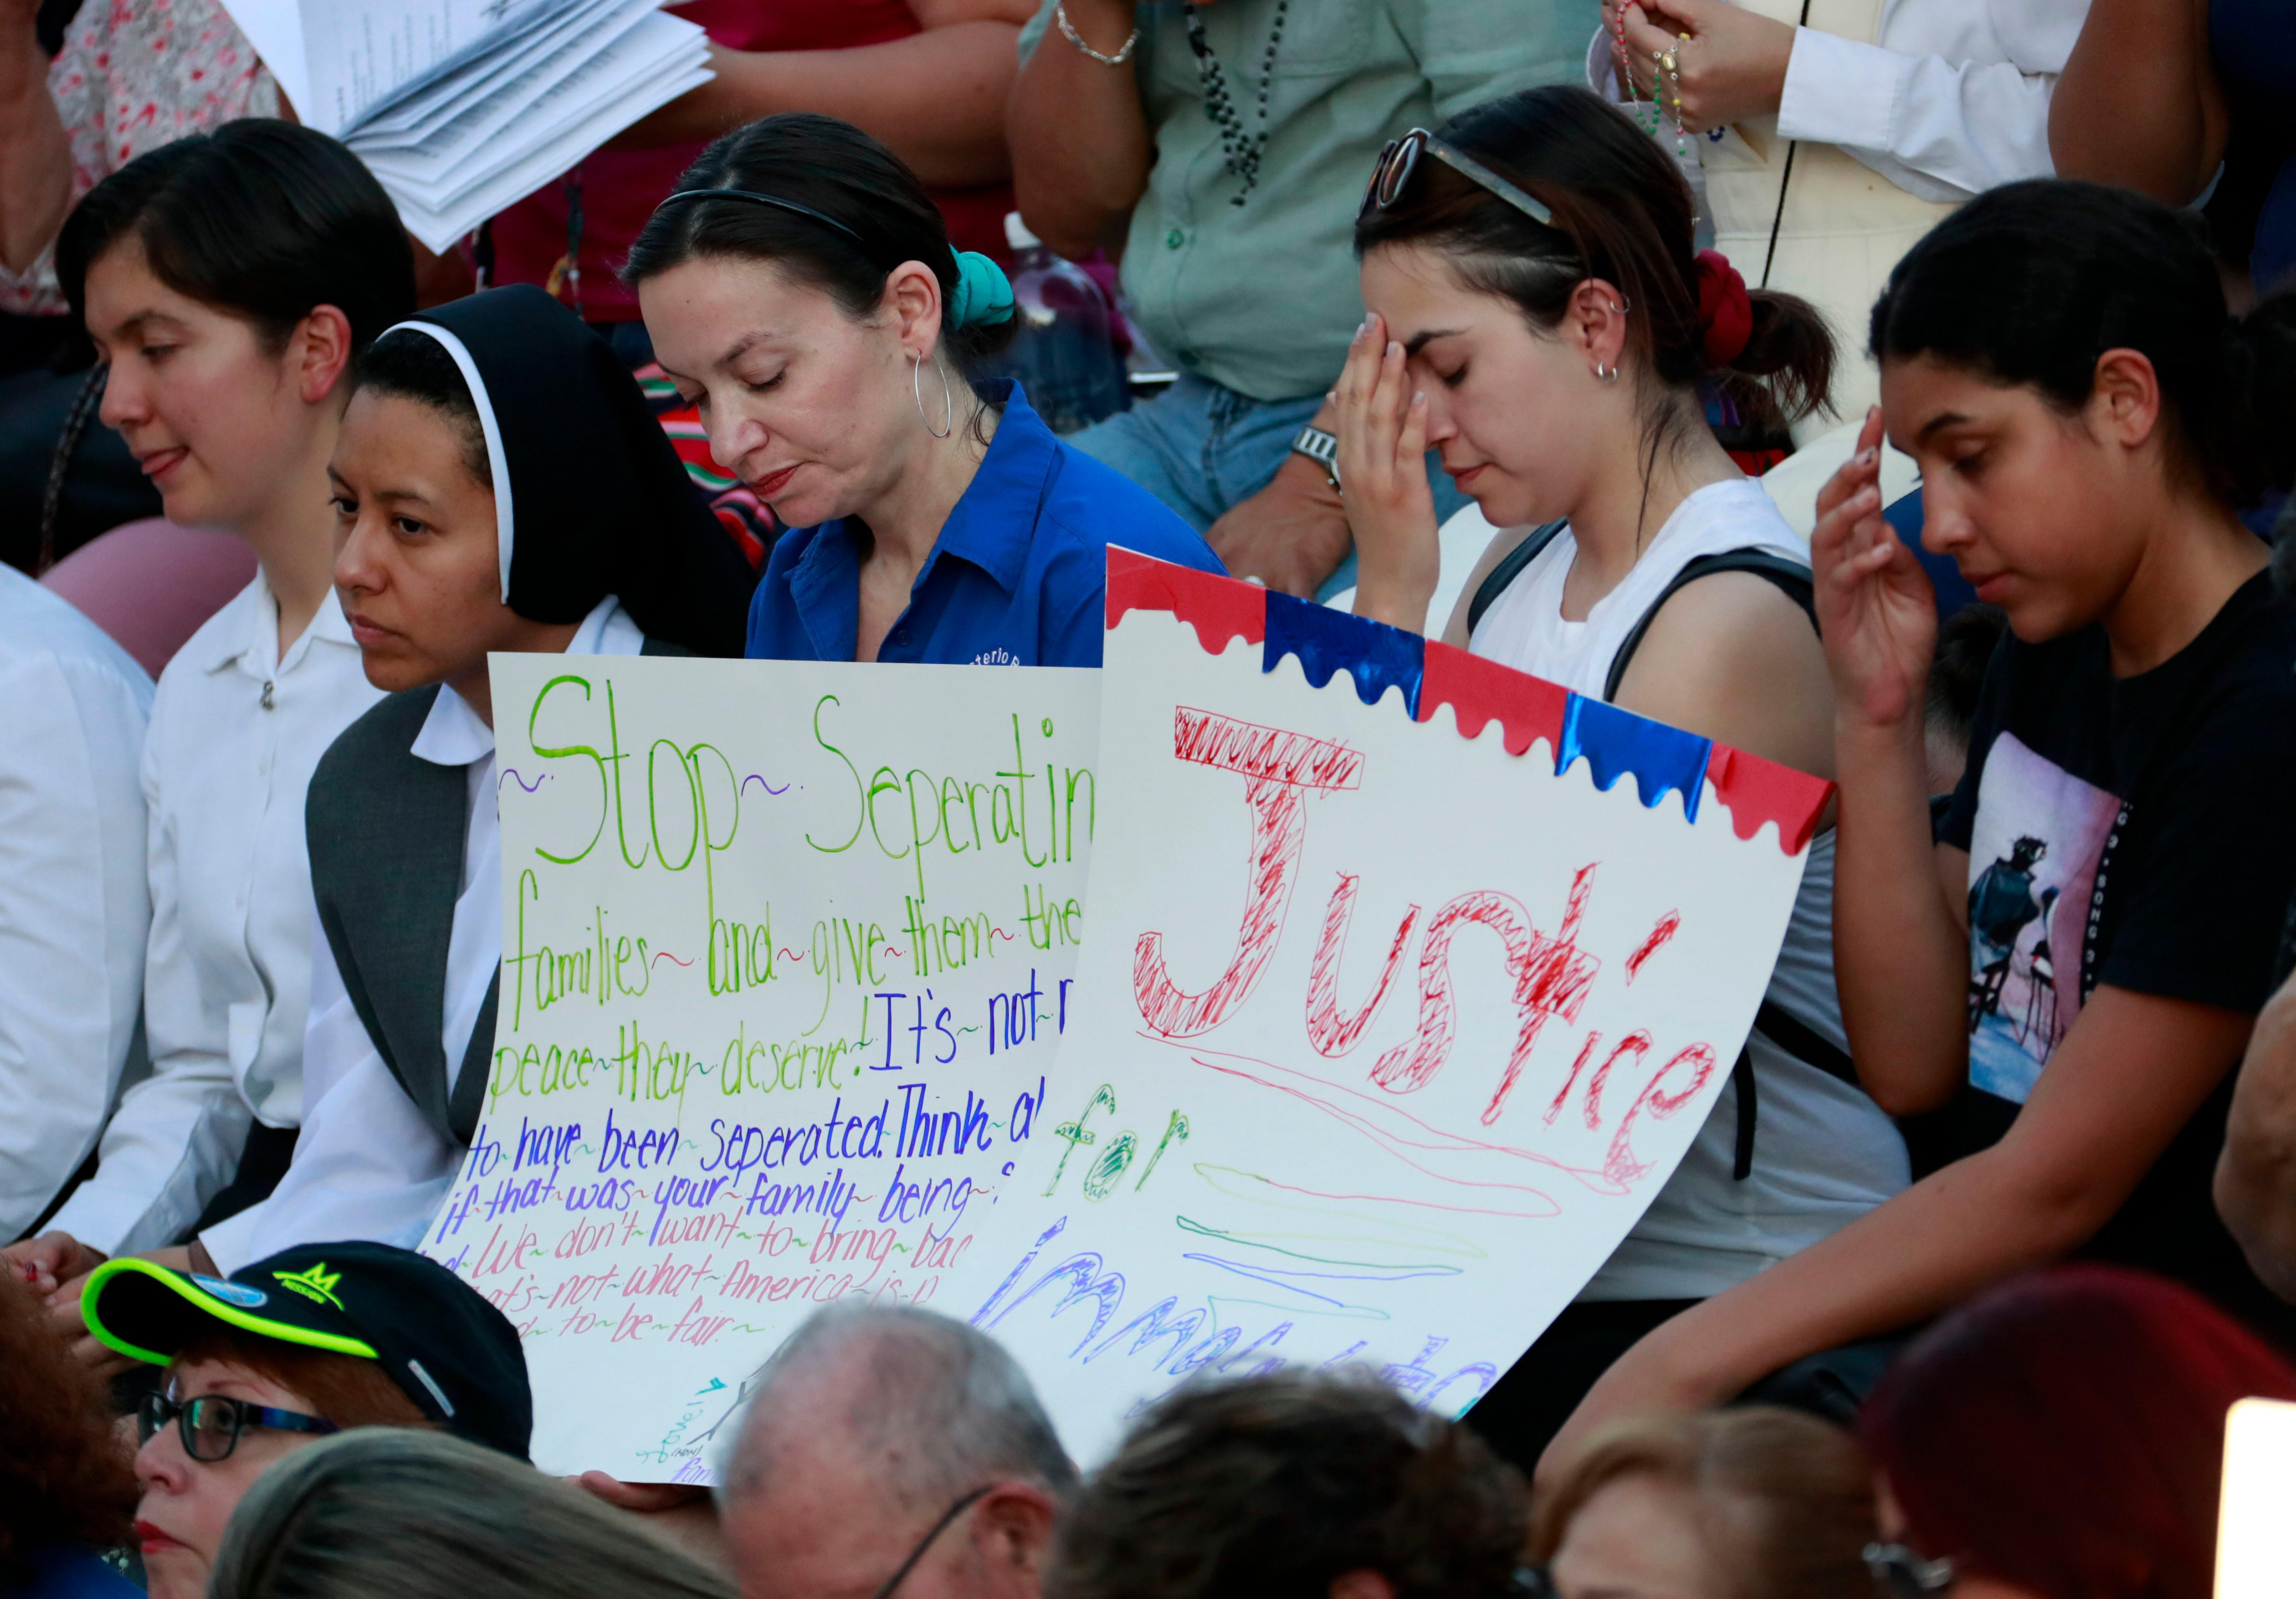 People gather at Saint Mark Catholic Church for a solidarity with migrants vigil, Thursday, June 21, 2018 in El Paso, Texas. (AP Photo/Matt York)